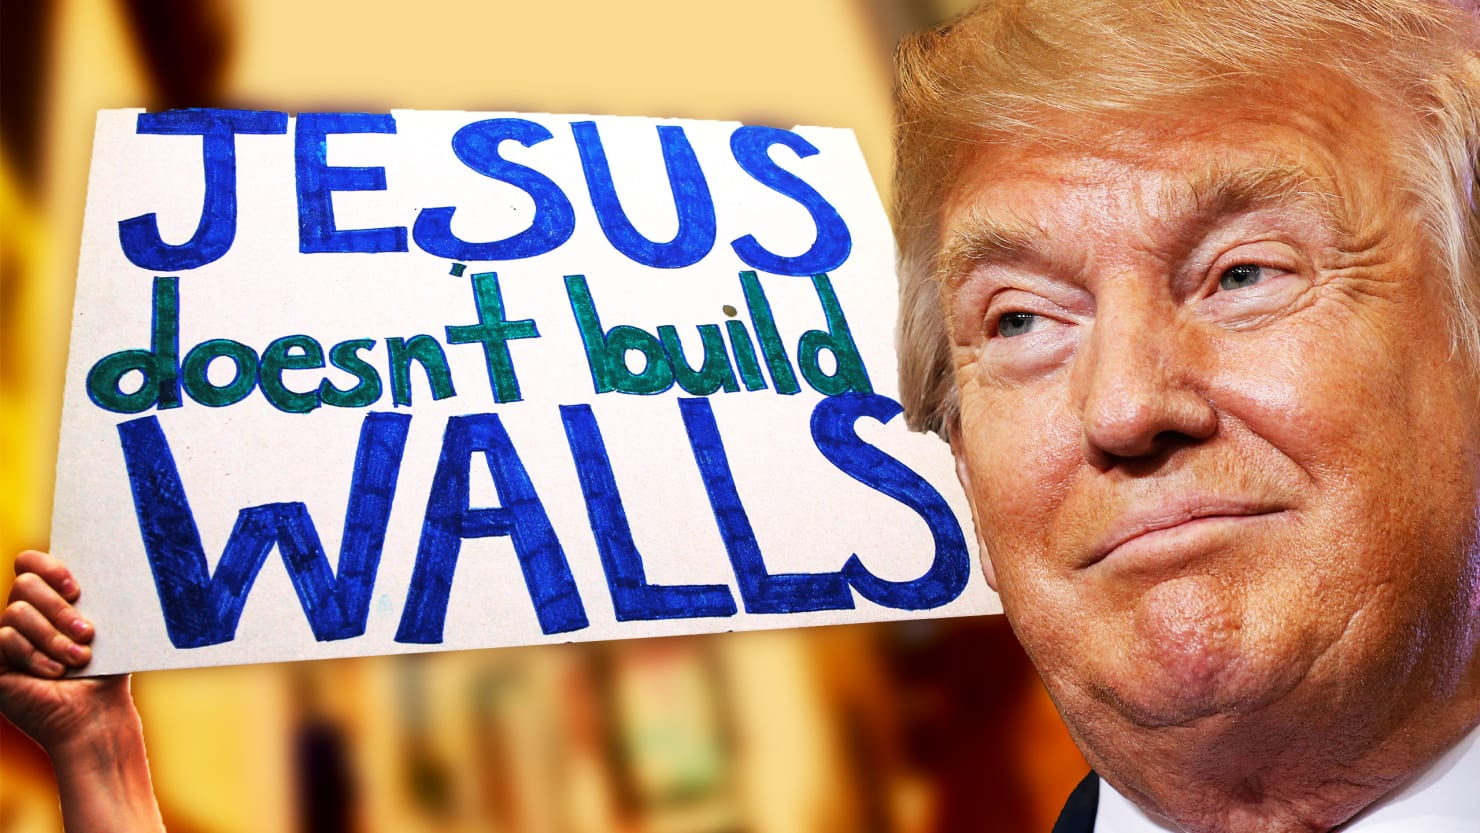 Evangelicals are losing faith in Trump after racist rantings.